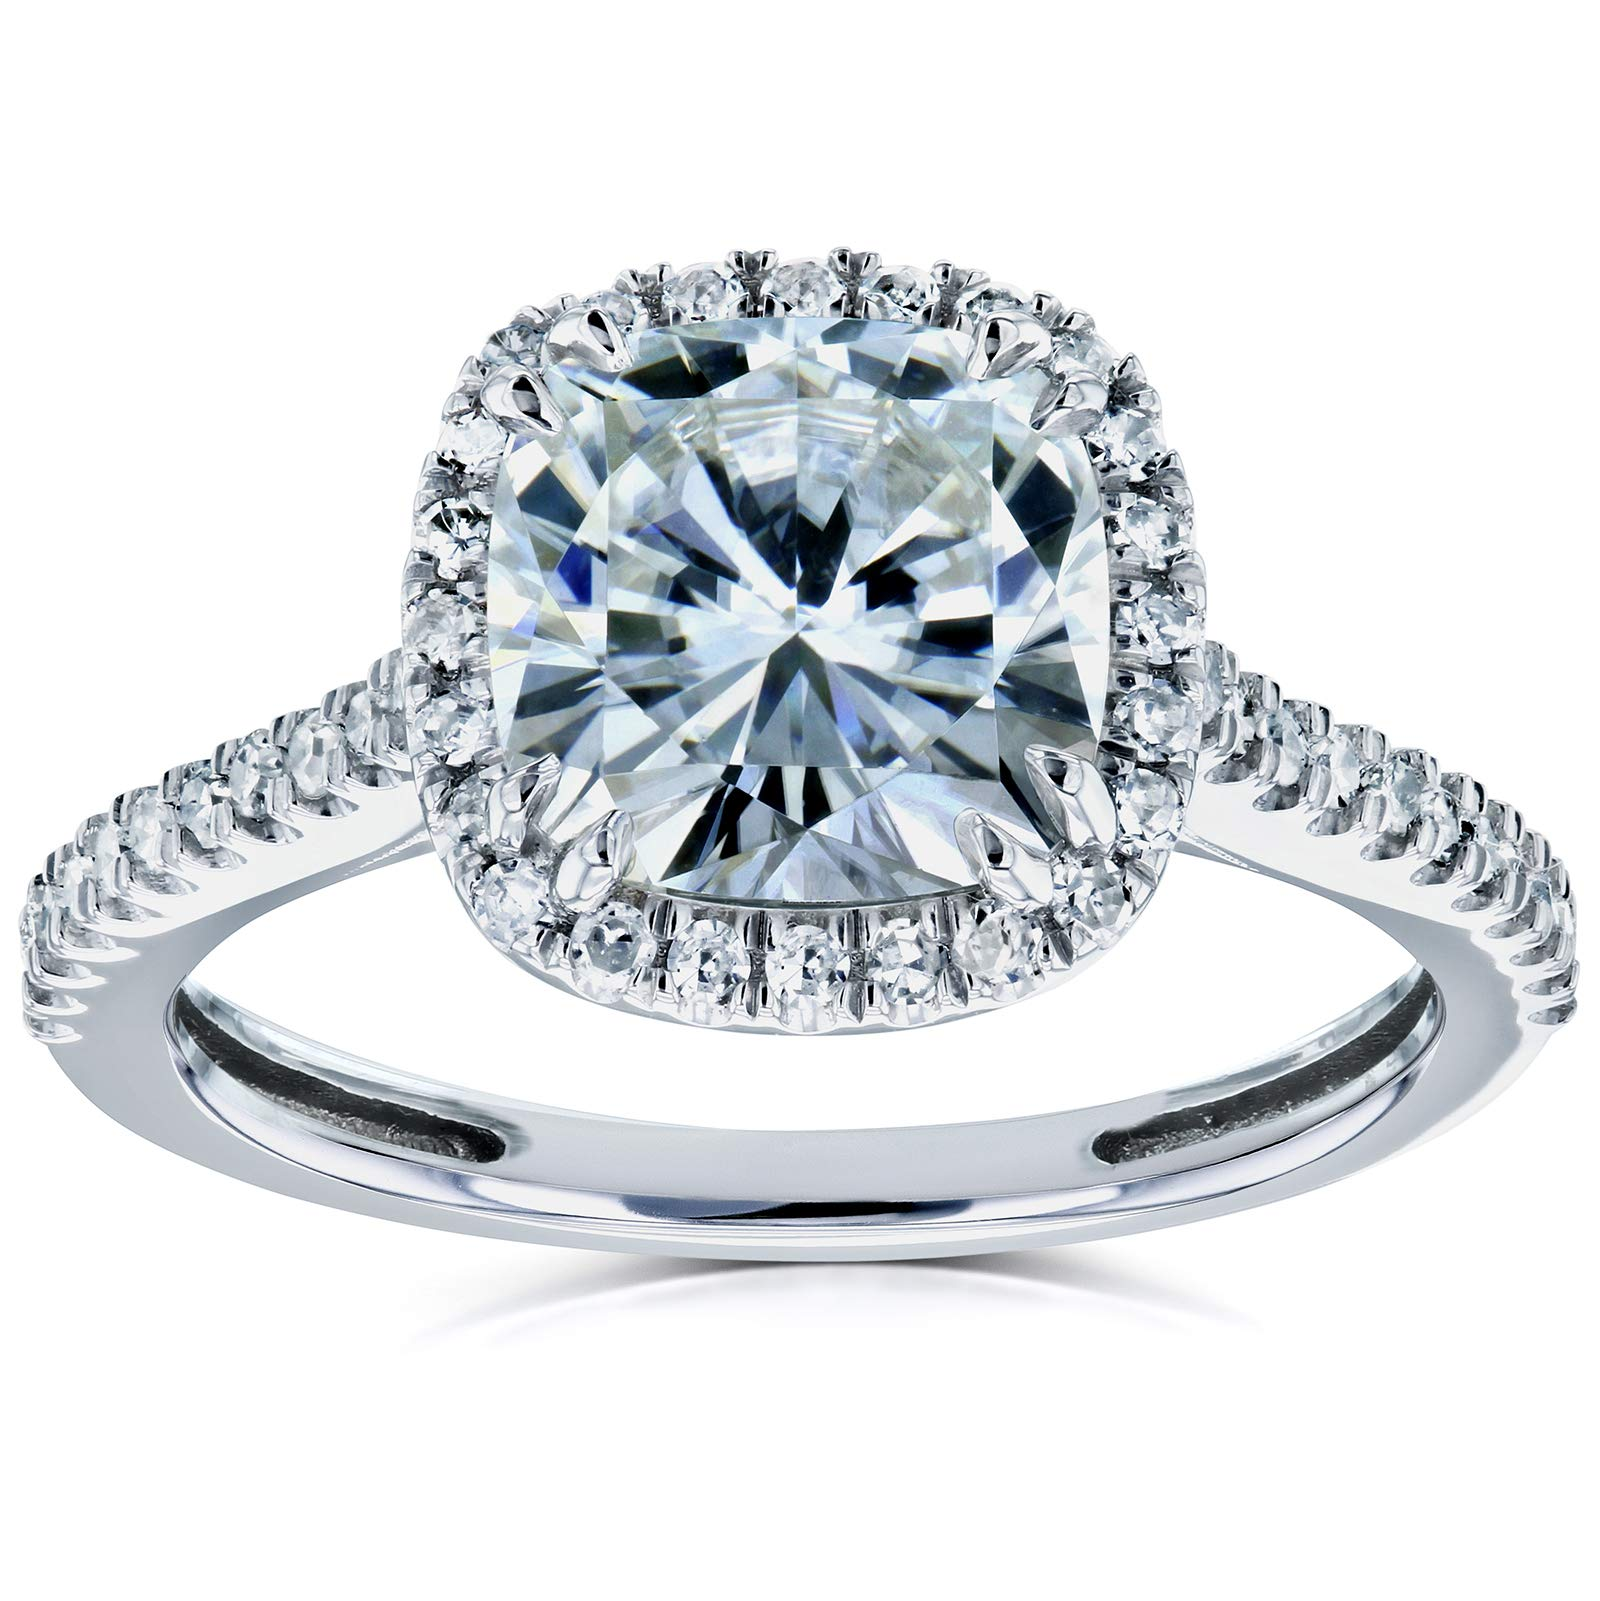 Cushion Moissanite and Diamond Halo Engagement Ring 2 1/4 CTW 14k White Gold, 4.5